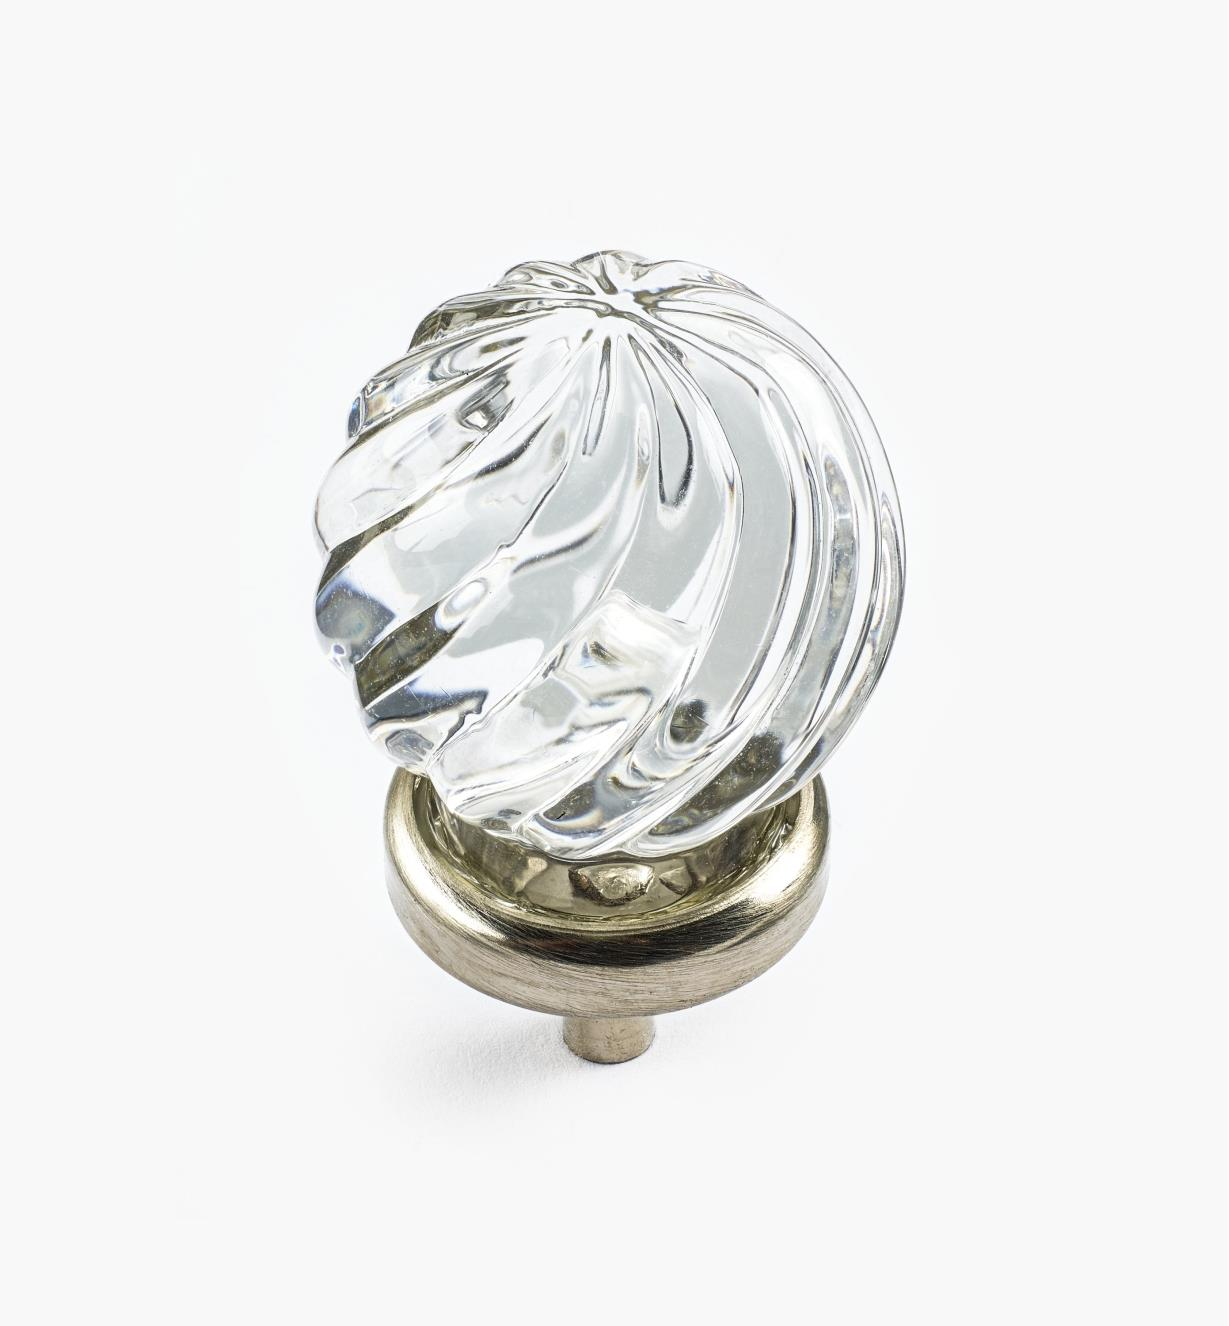 01A3812 - Glass Twist Knob, Clear